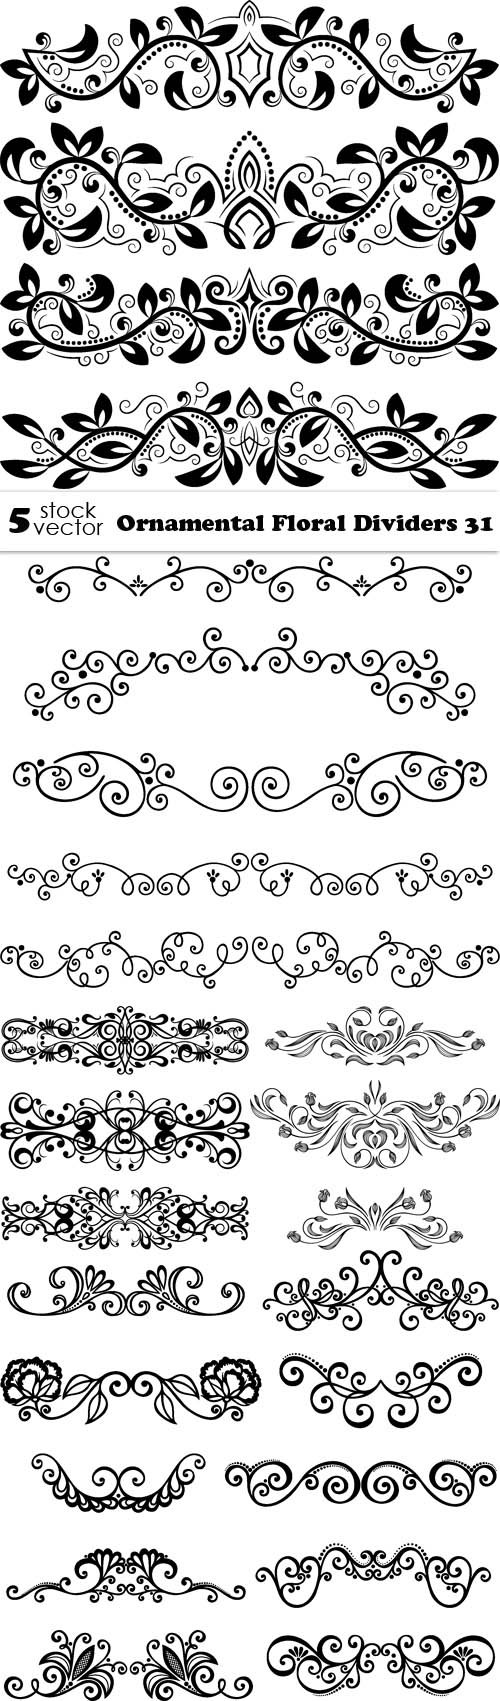 Vectors - Ornamental Floral Dividers 31